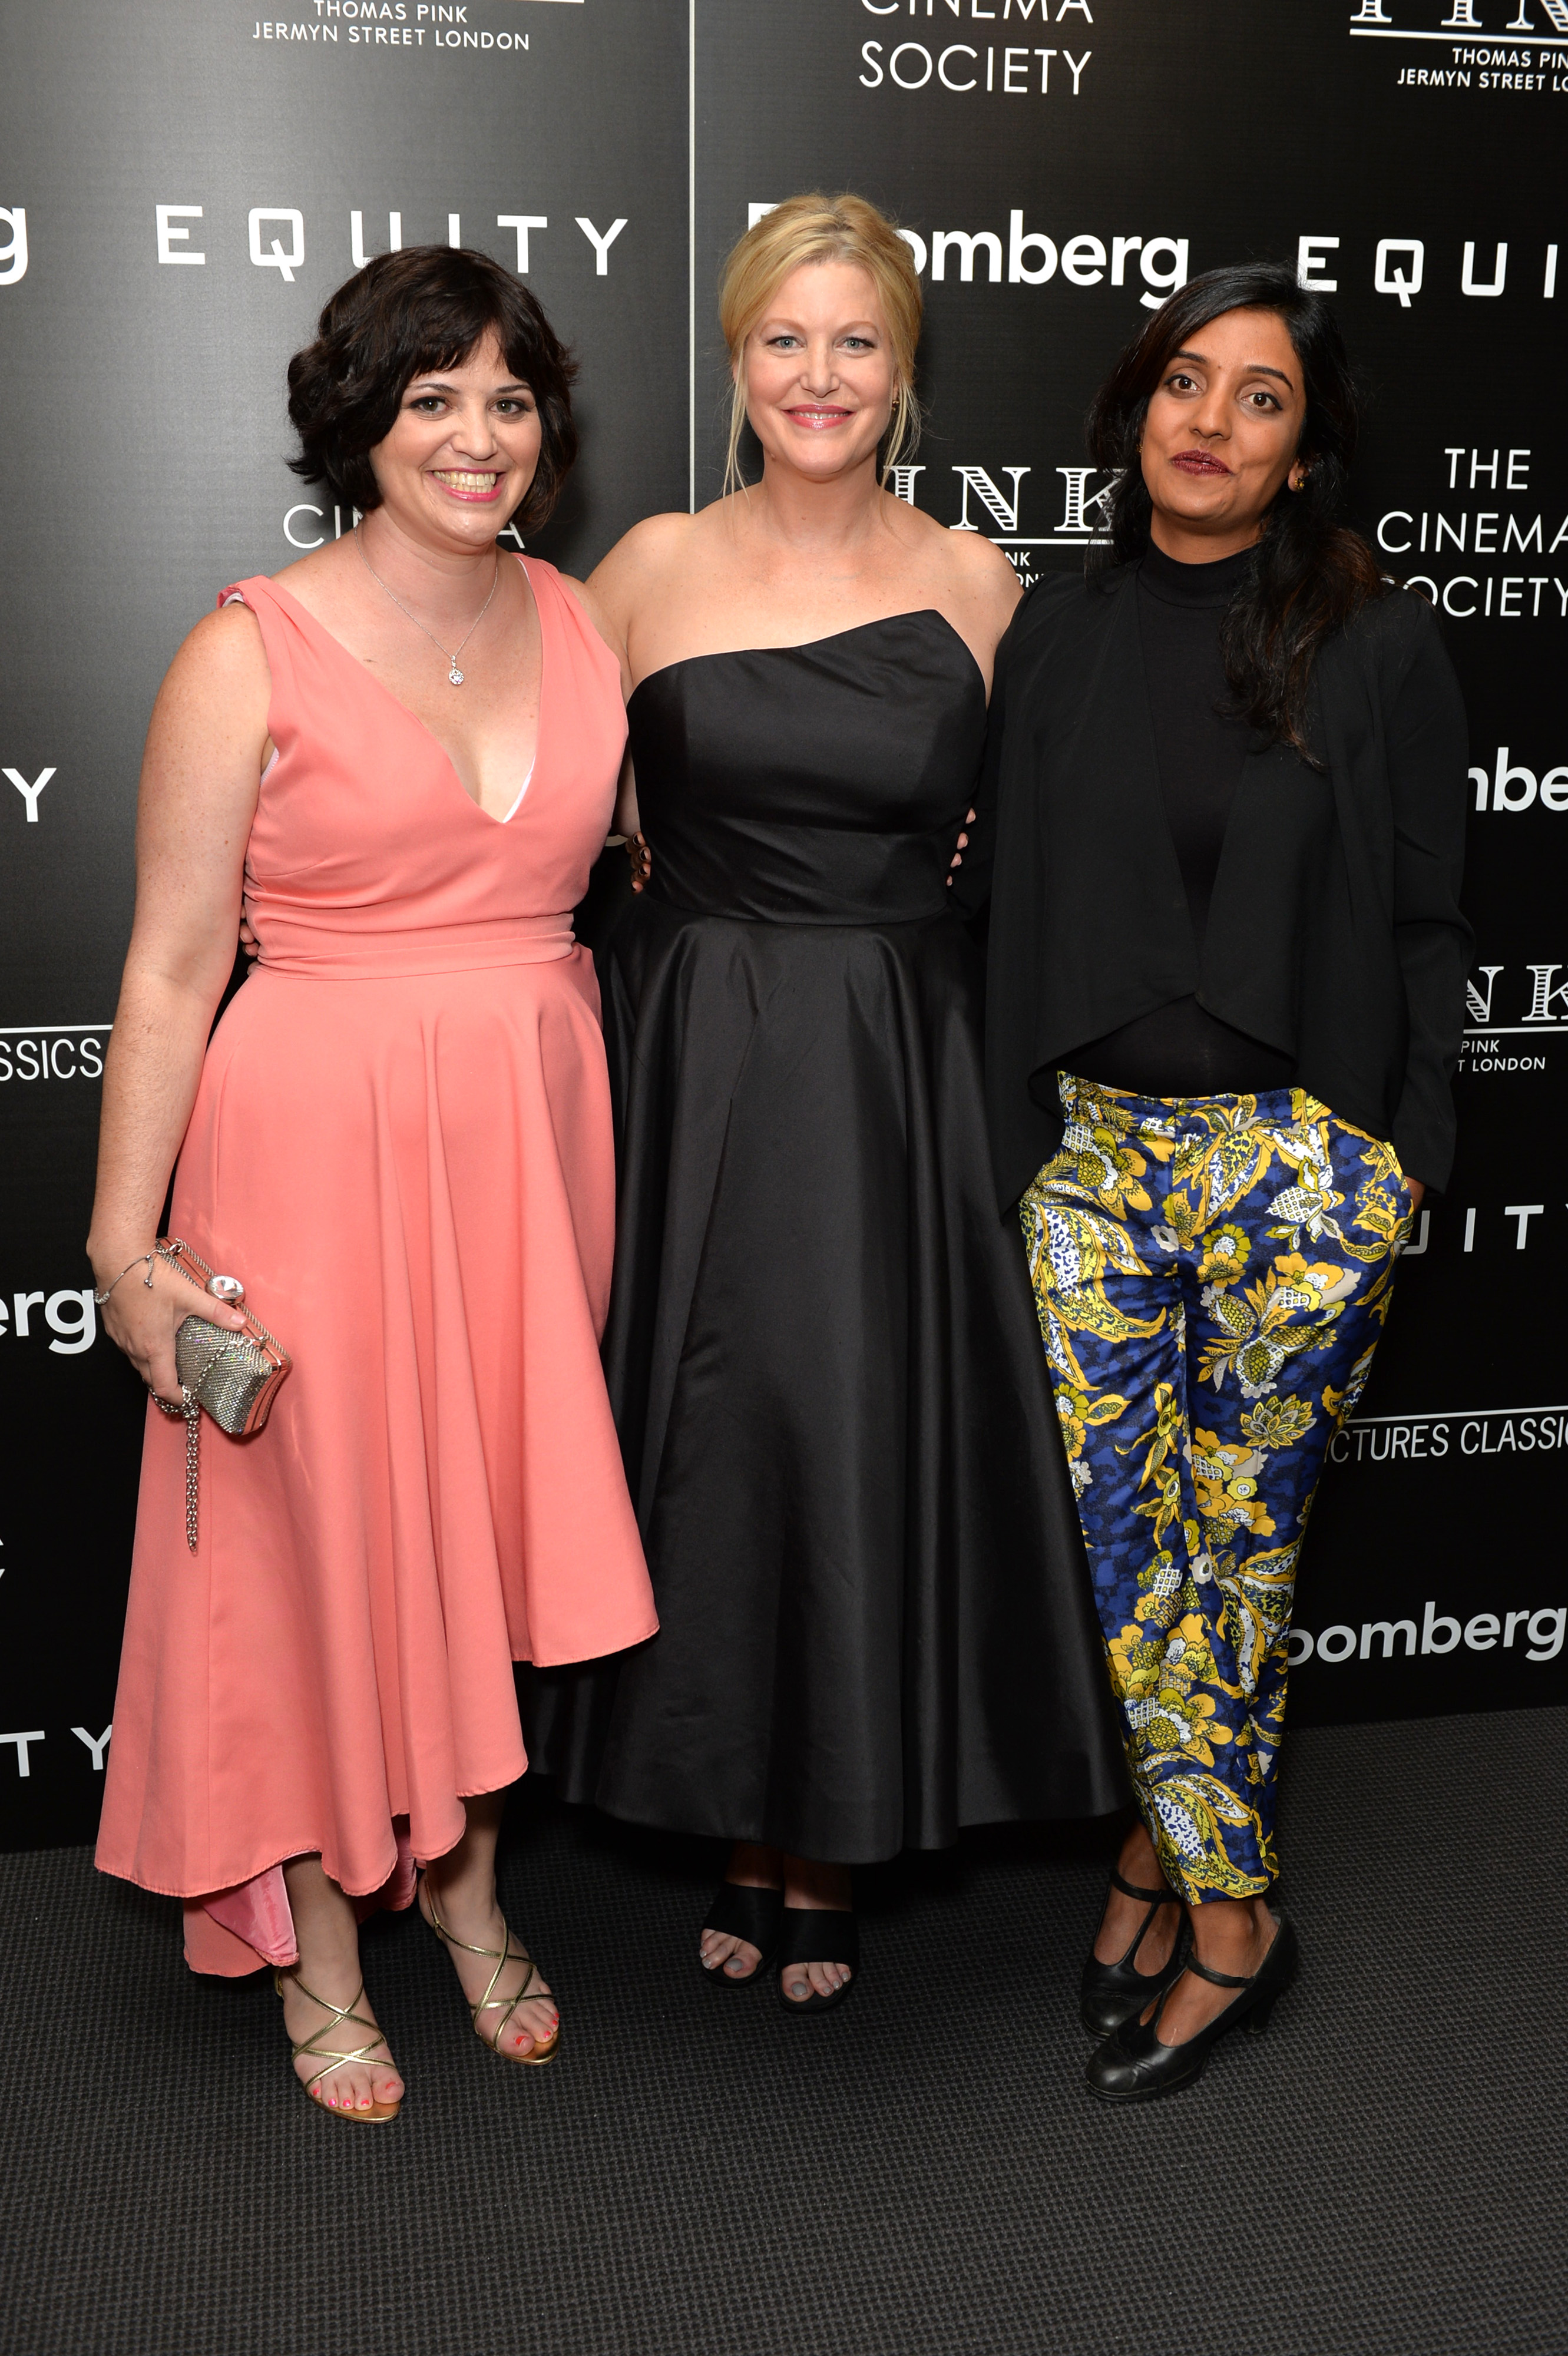 Screenwriter Amy Fox, actor Anna Gunn and director Meera Menon attend a screening of  Equity  on July 26, 2016 in New York City.